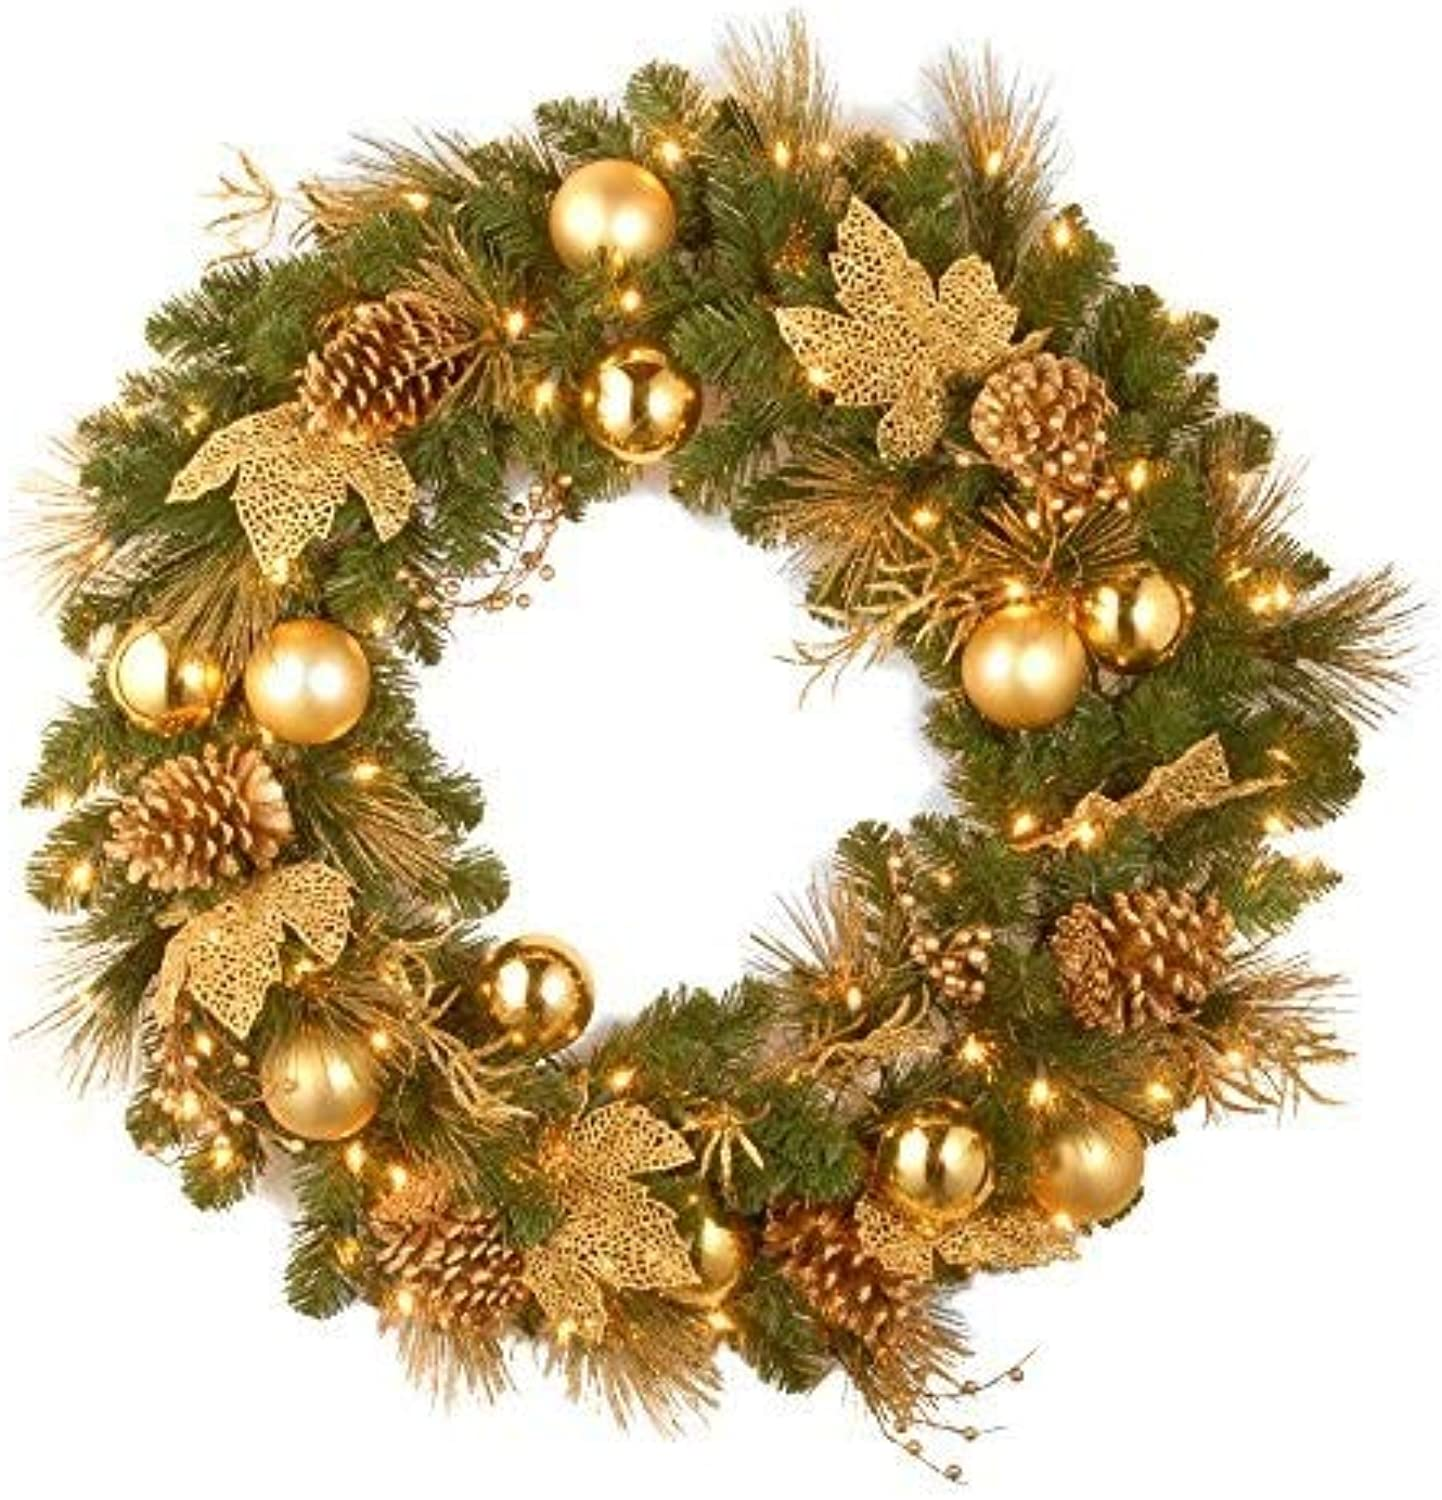 National Tree 24 Inch Decorative Collection Elegance Wreath with 50 Battery Operated Warm White LED Lights (DC13-109-24W B)